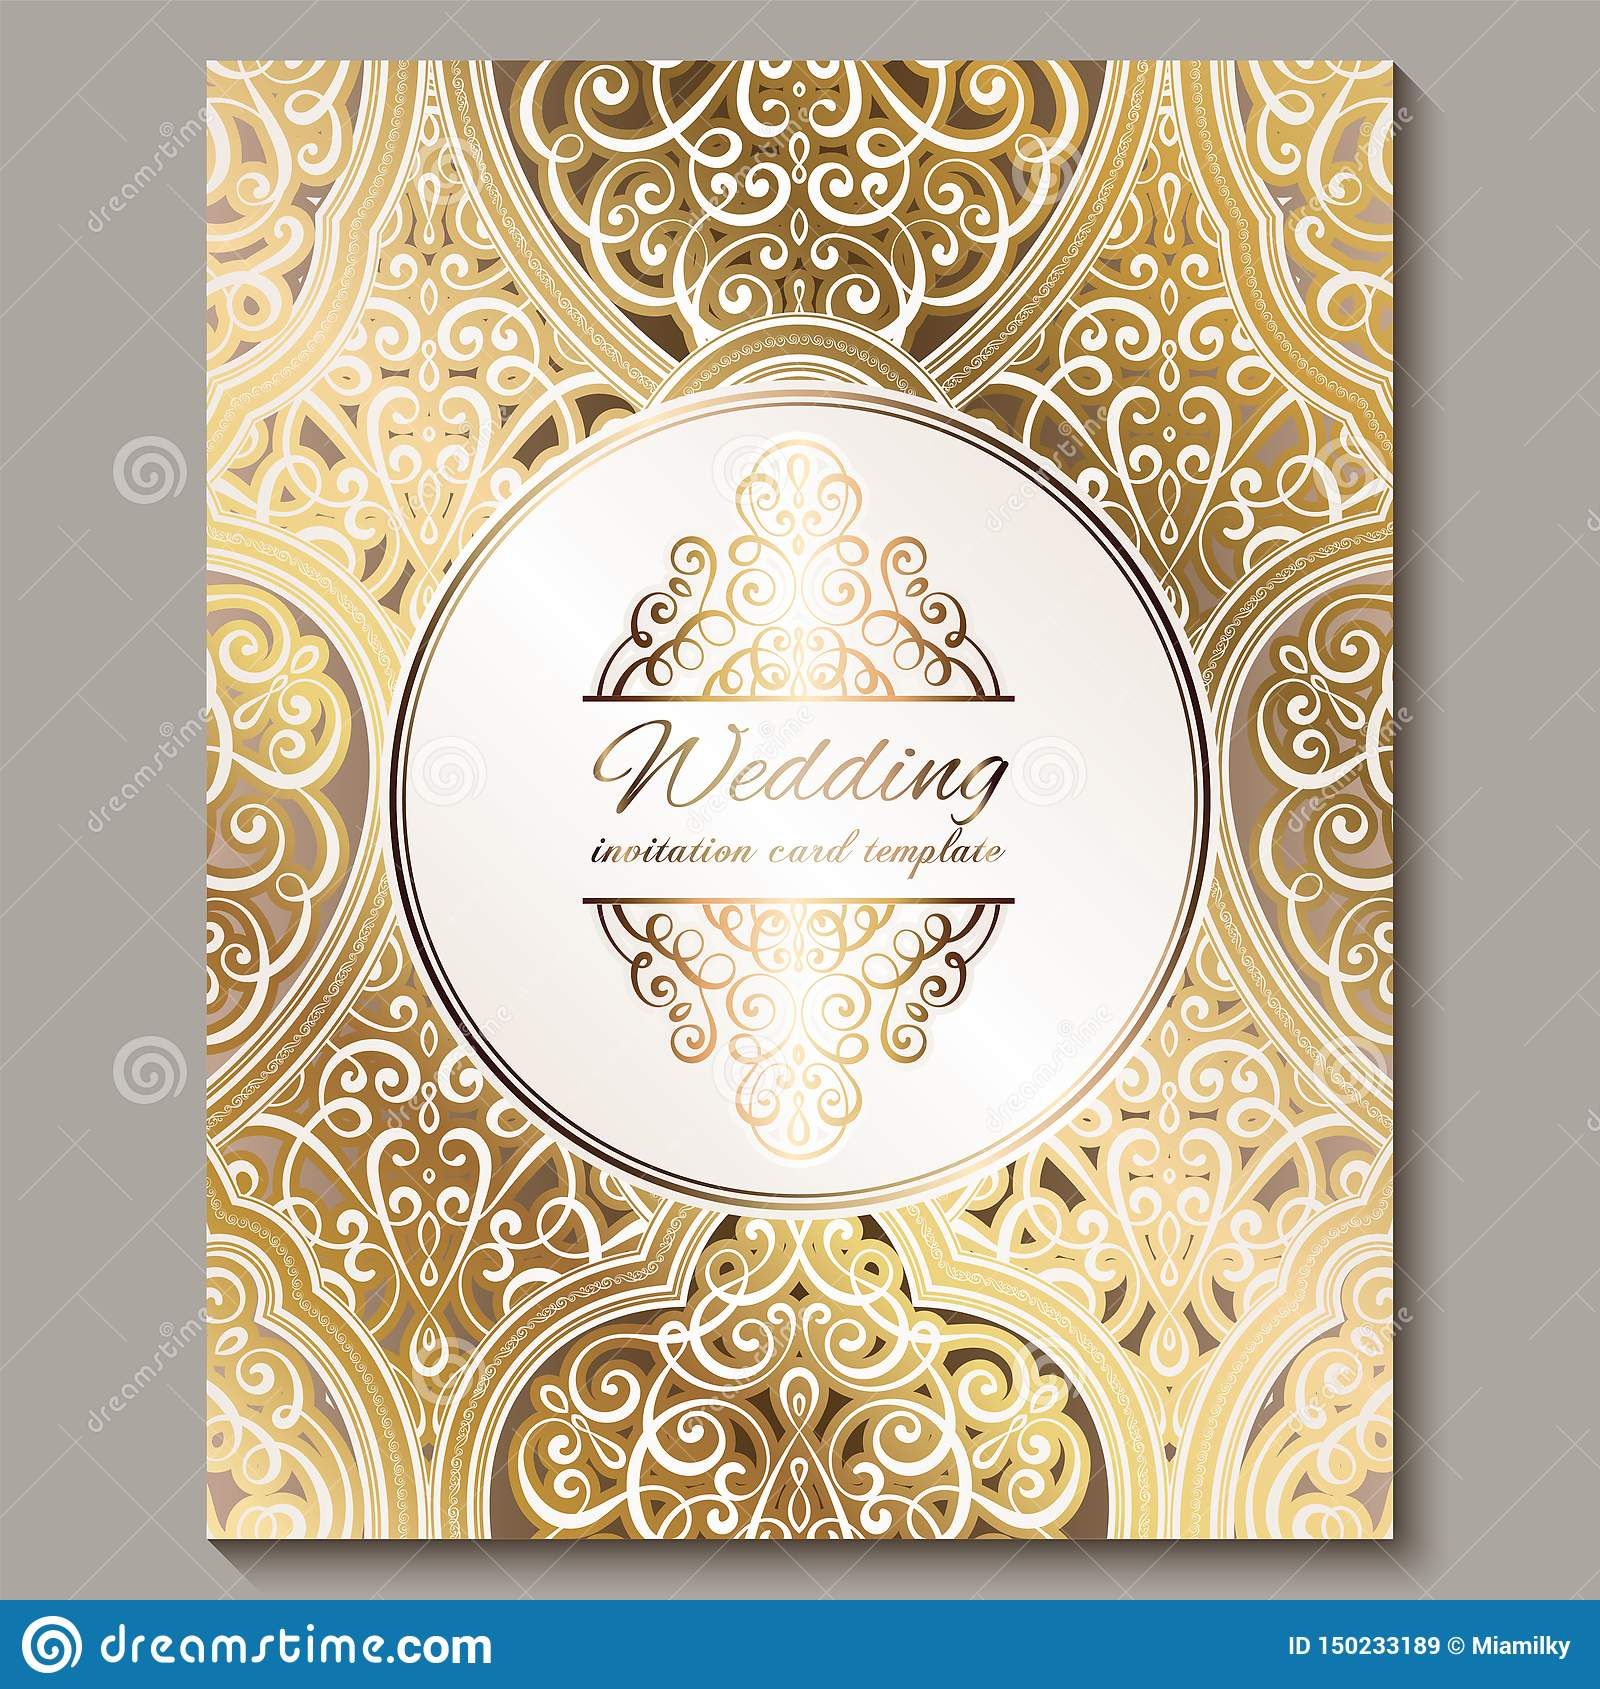 Wedding Invitation Card With Gold Shiny Eastern And Baroque